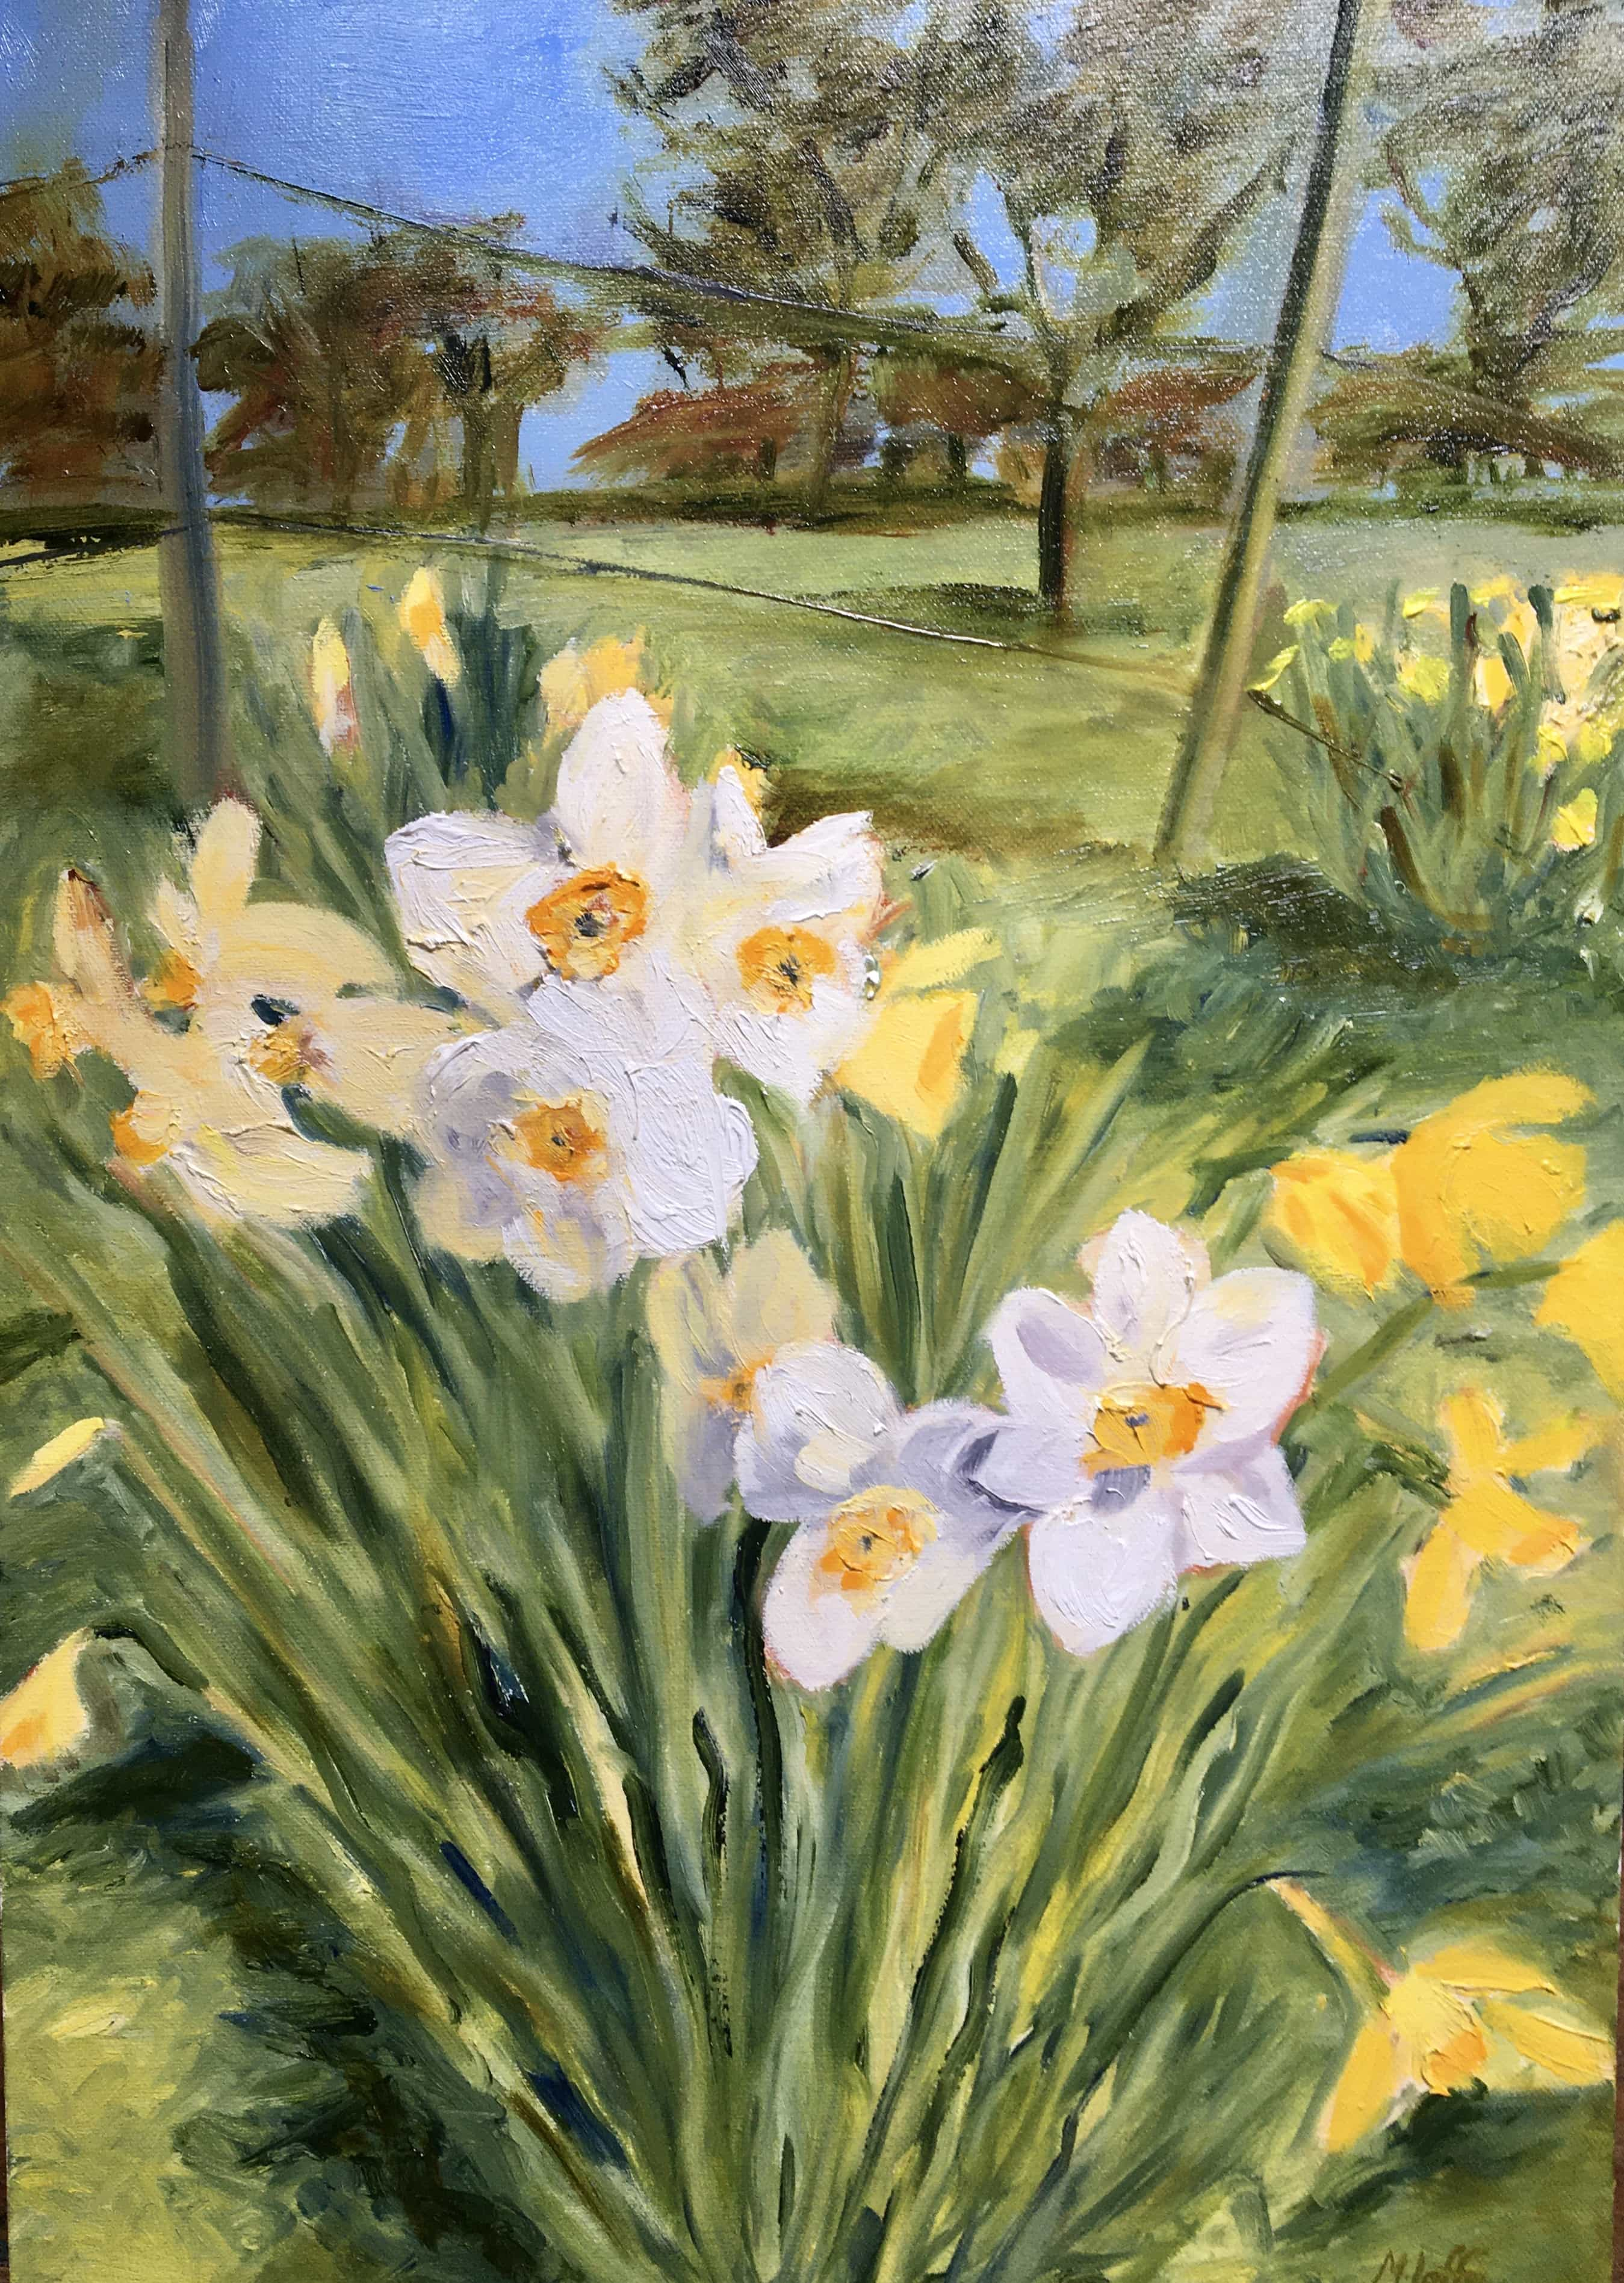 Oil panting of daffodils narcissi spring flowers yellow against a blue sky